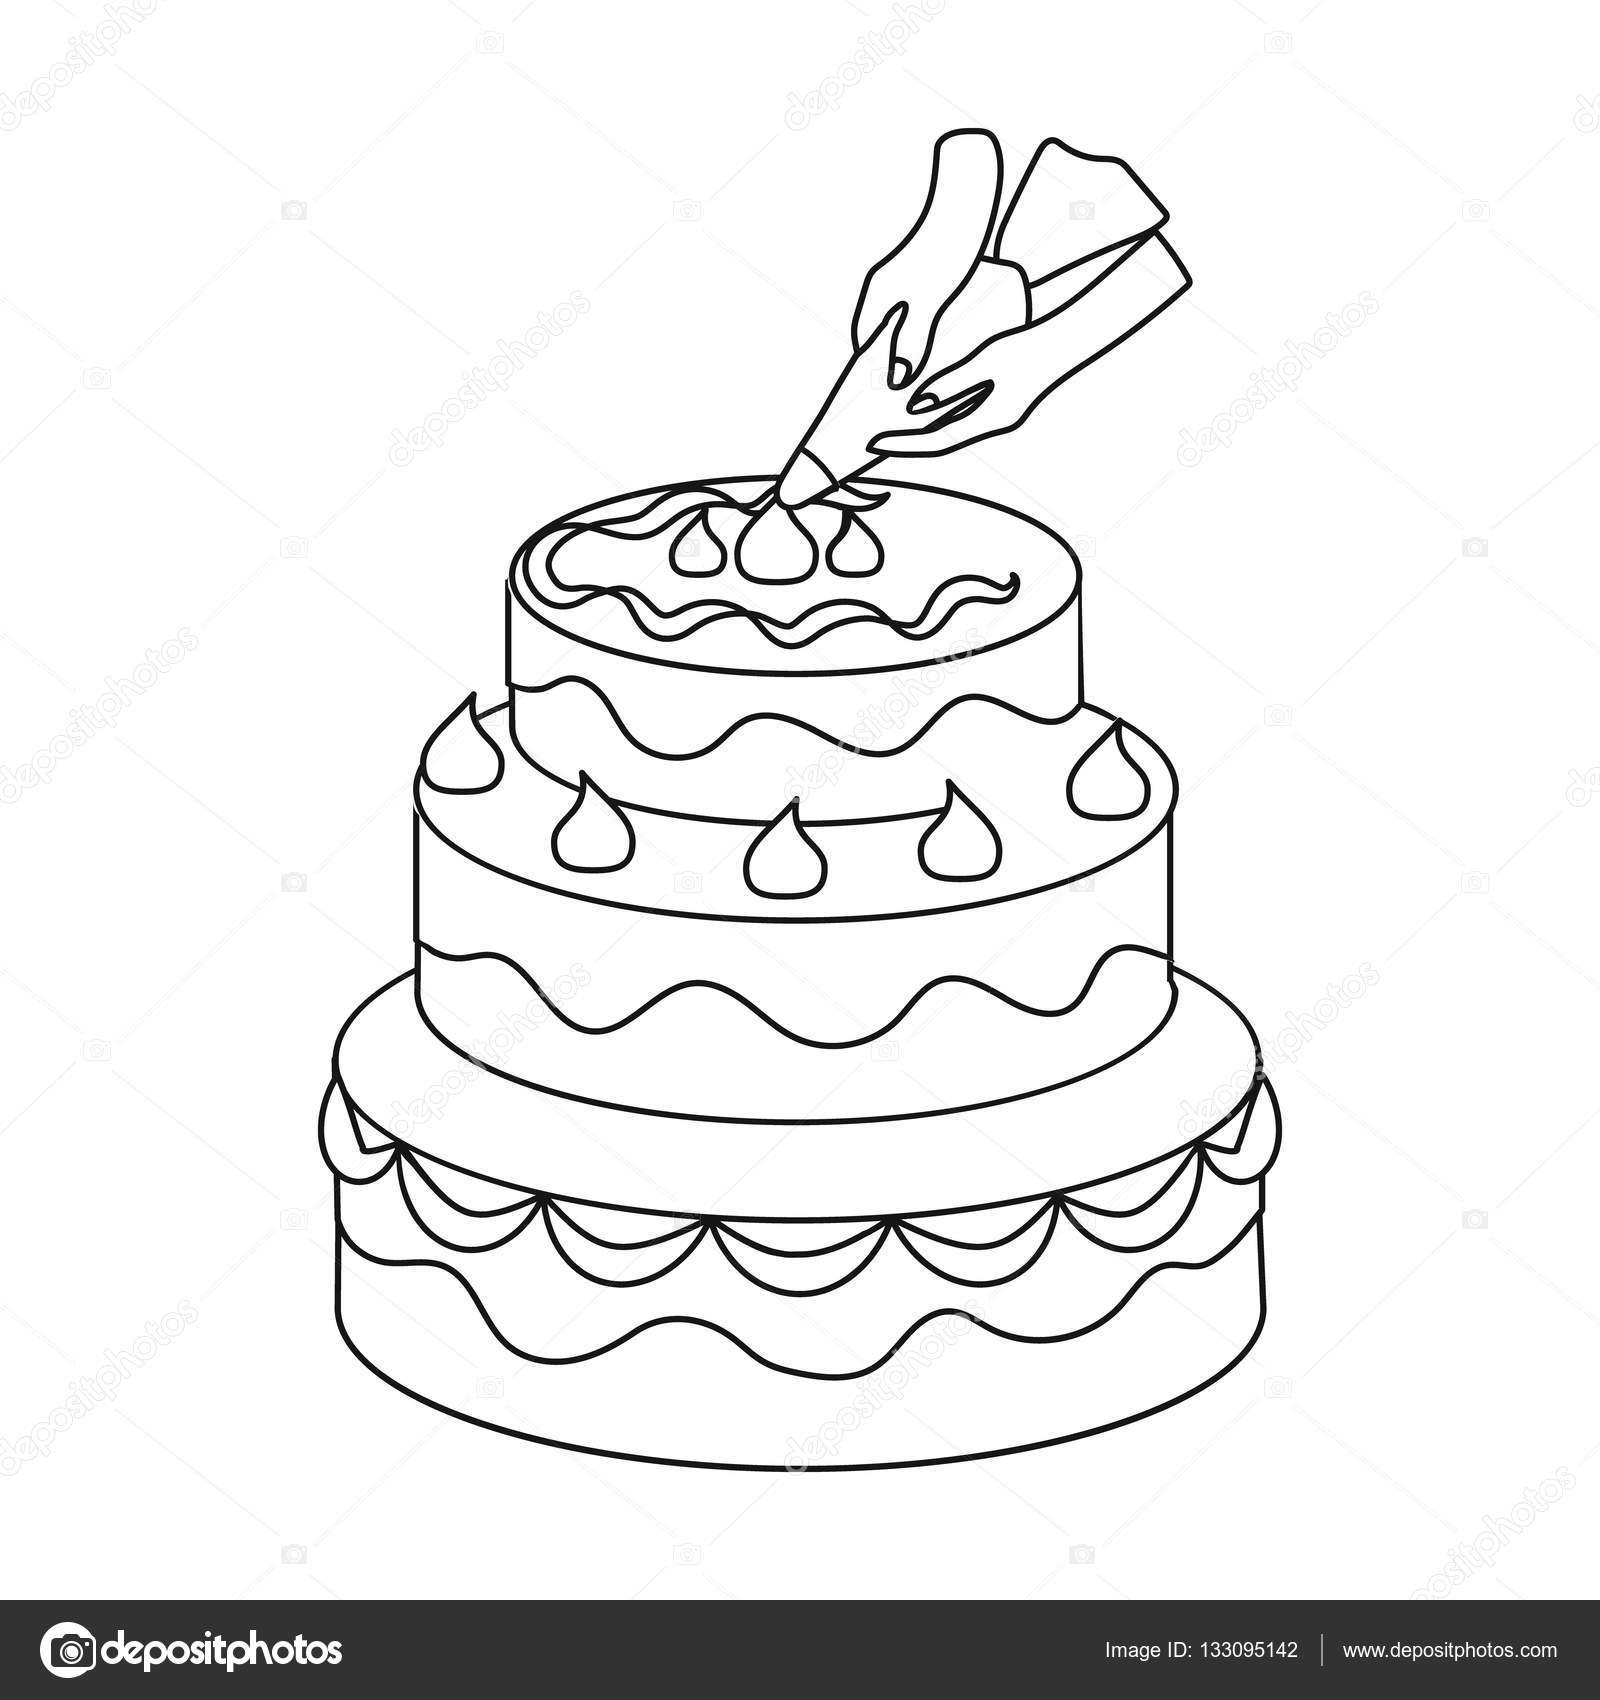 Decorating Of Birthday Cake Icon In Outline Style Isolated On White